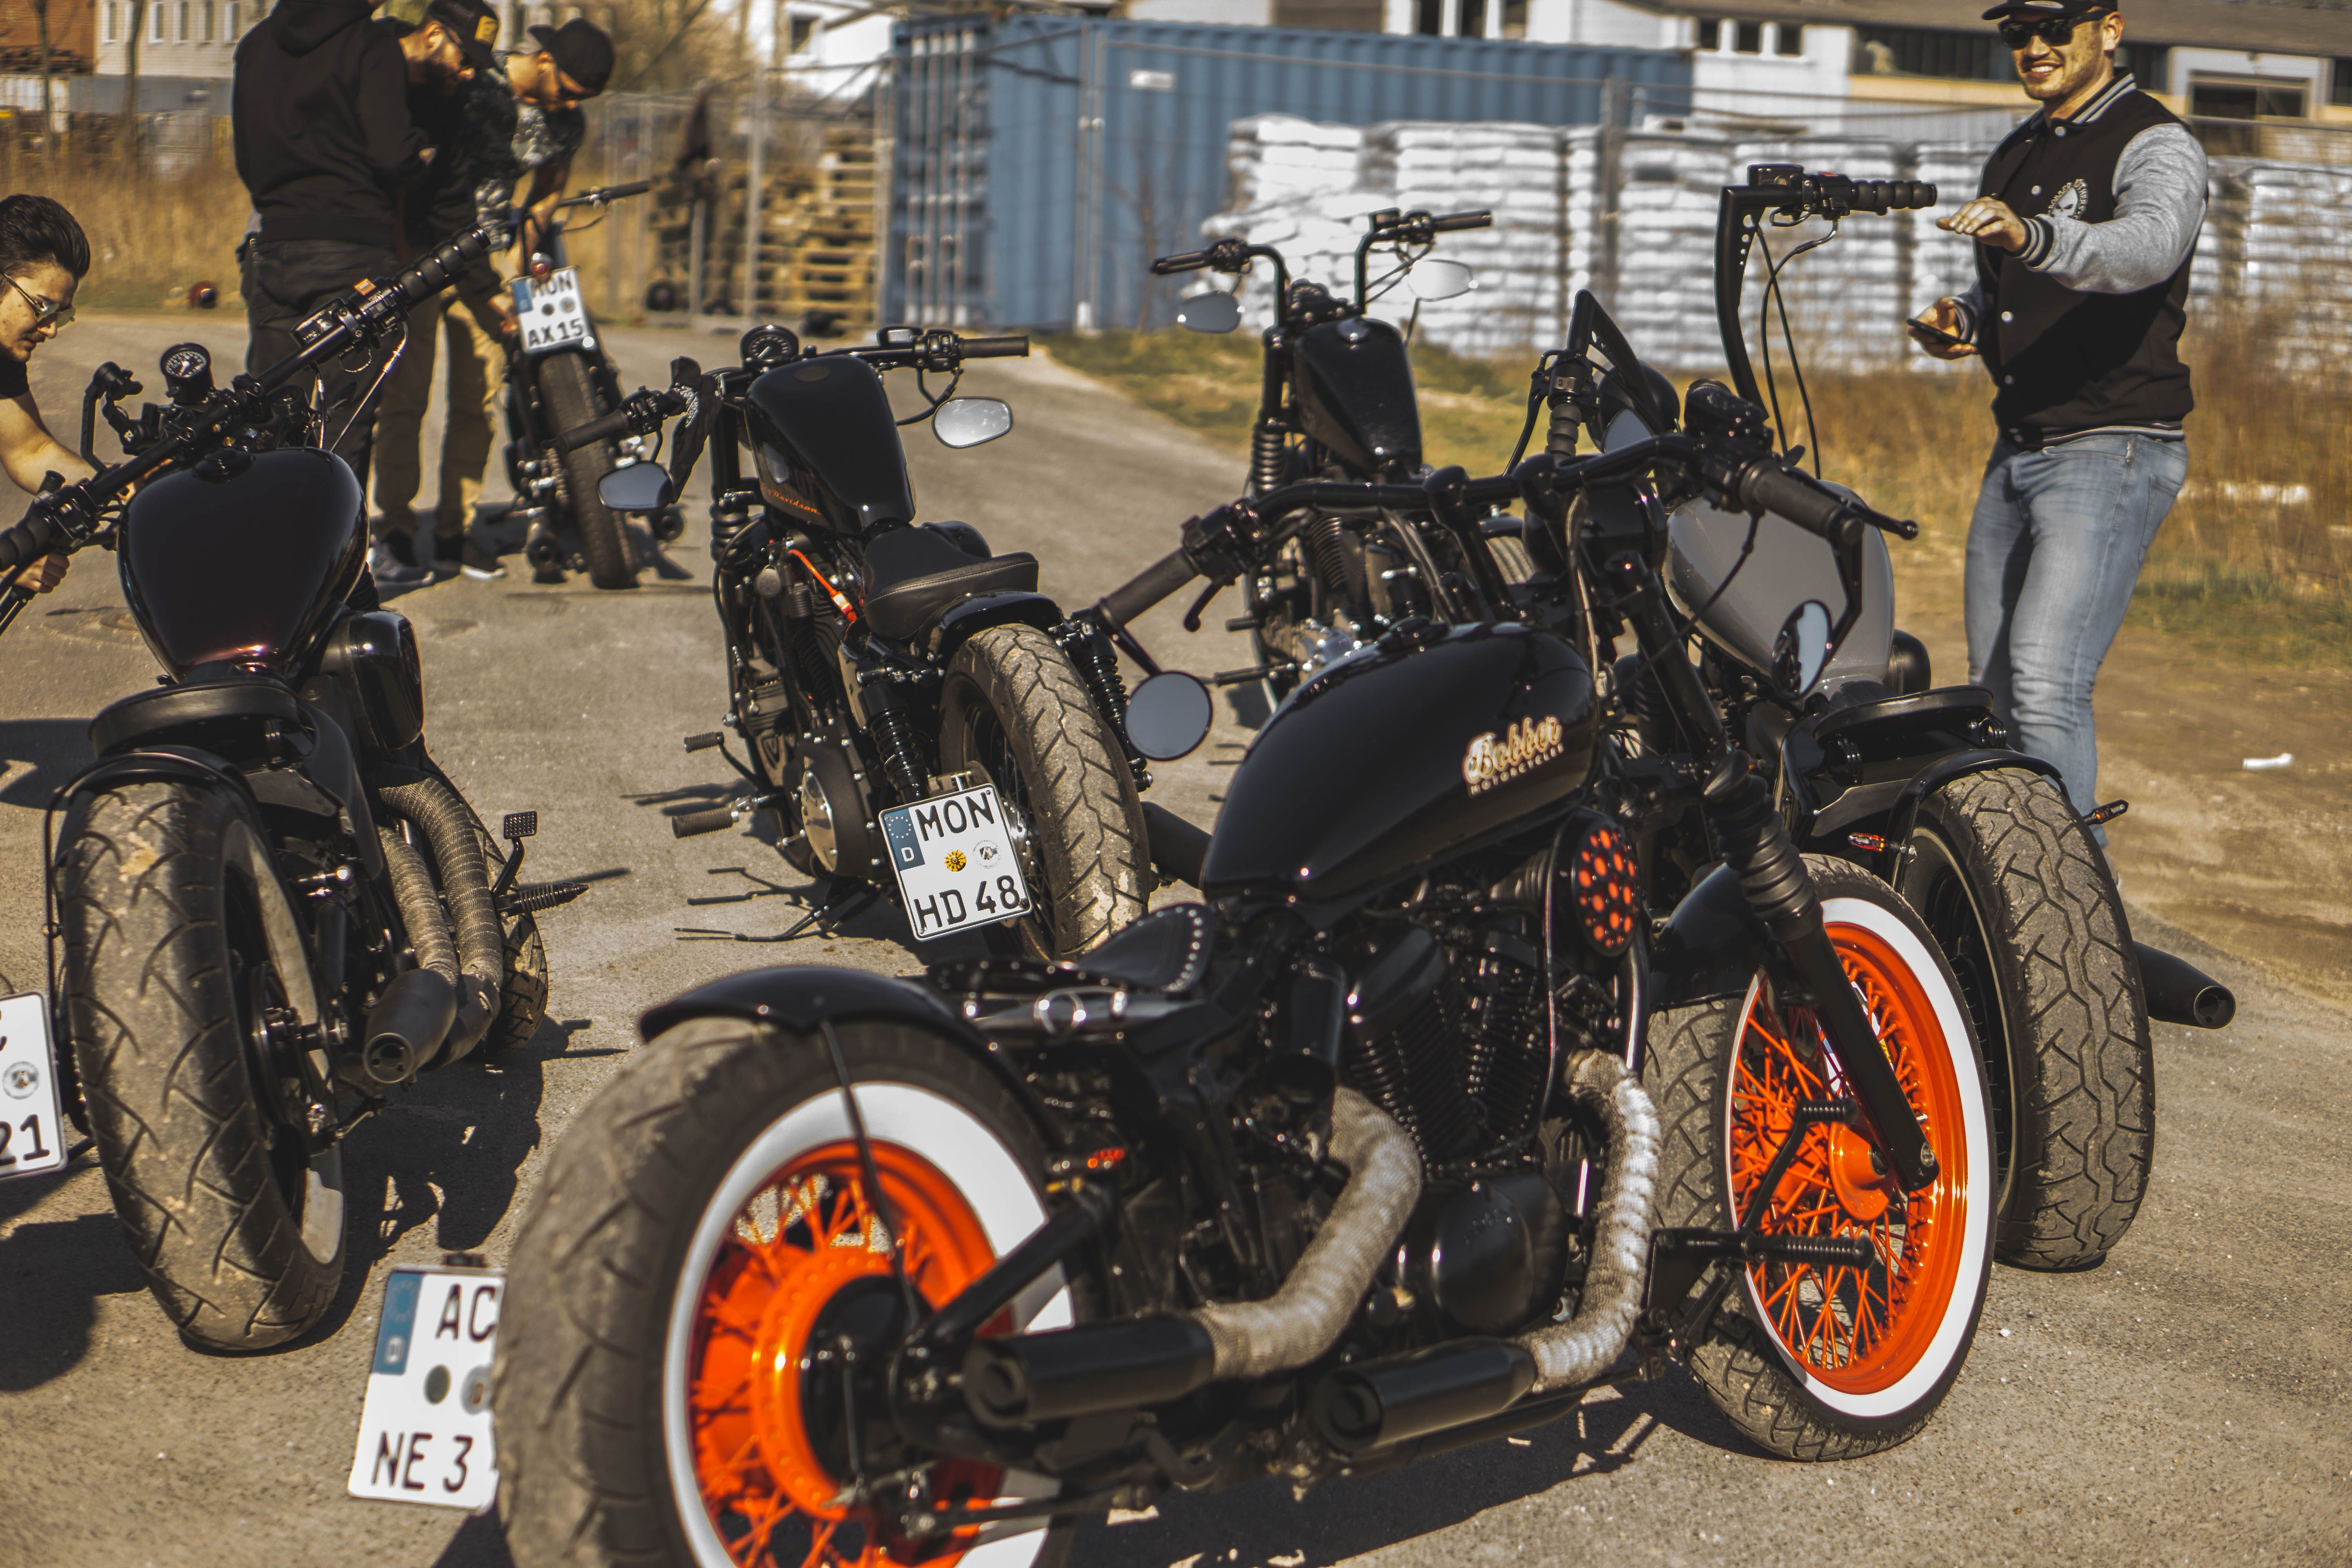 Bobberbrothers Squad On Tour Custom Bobber Motorcycle Inspiration Harley Customs Diy Cafe Racer Honda Prod Custom Bobber Cafe Racer Honda Bobber Motorcycle